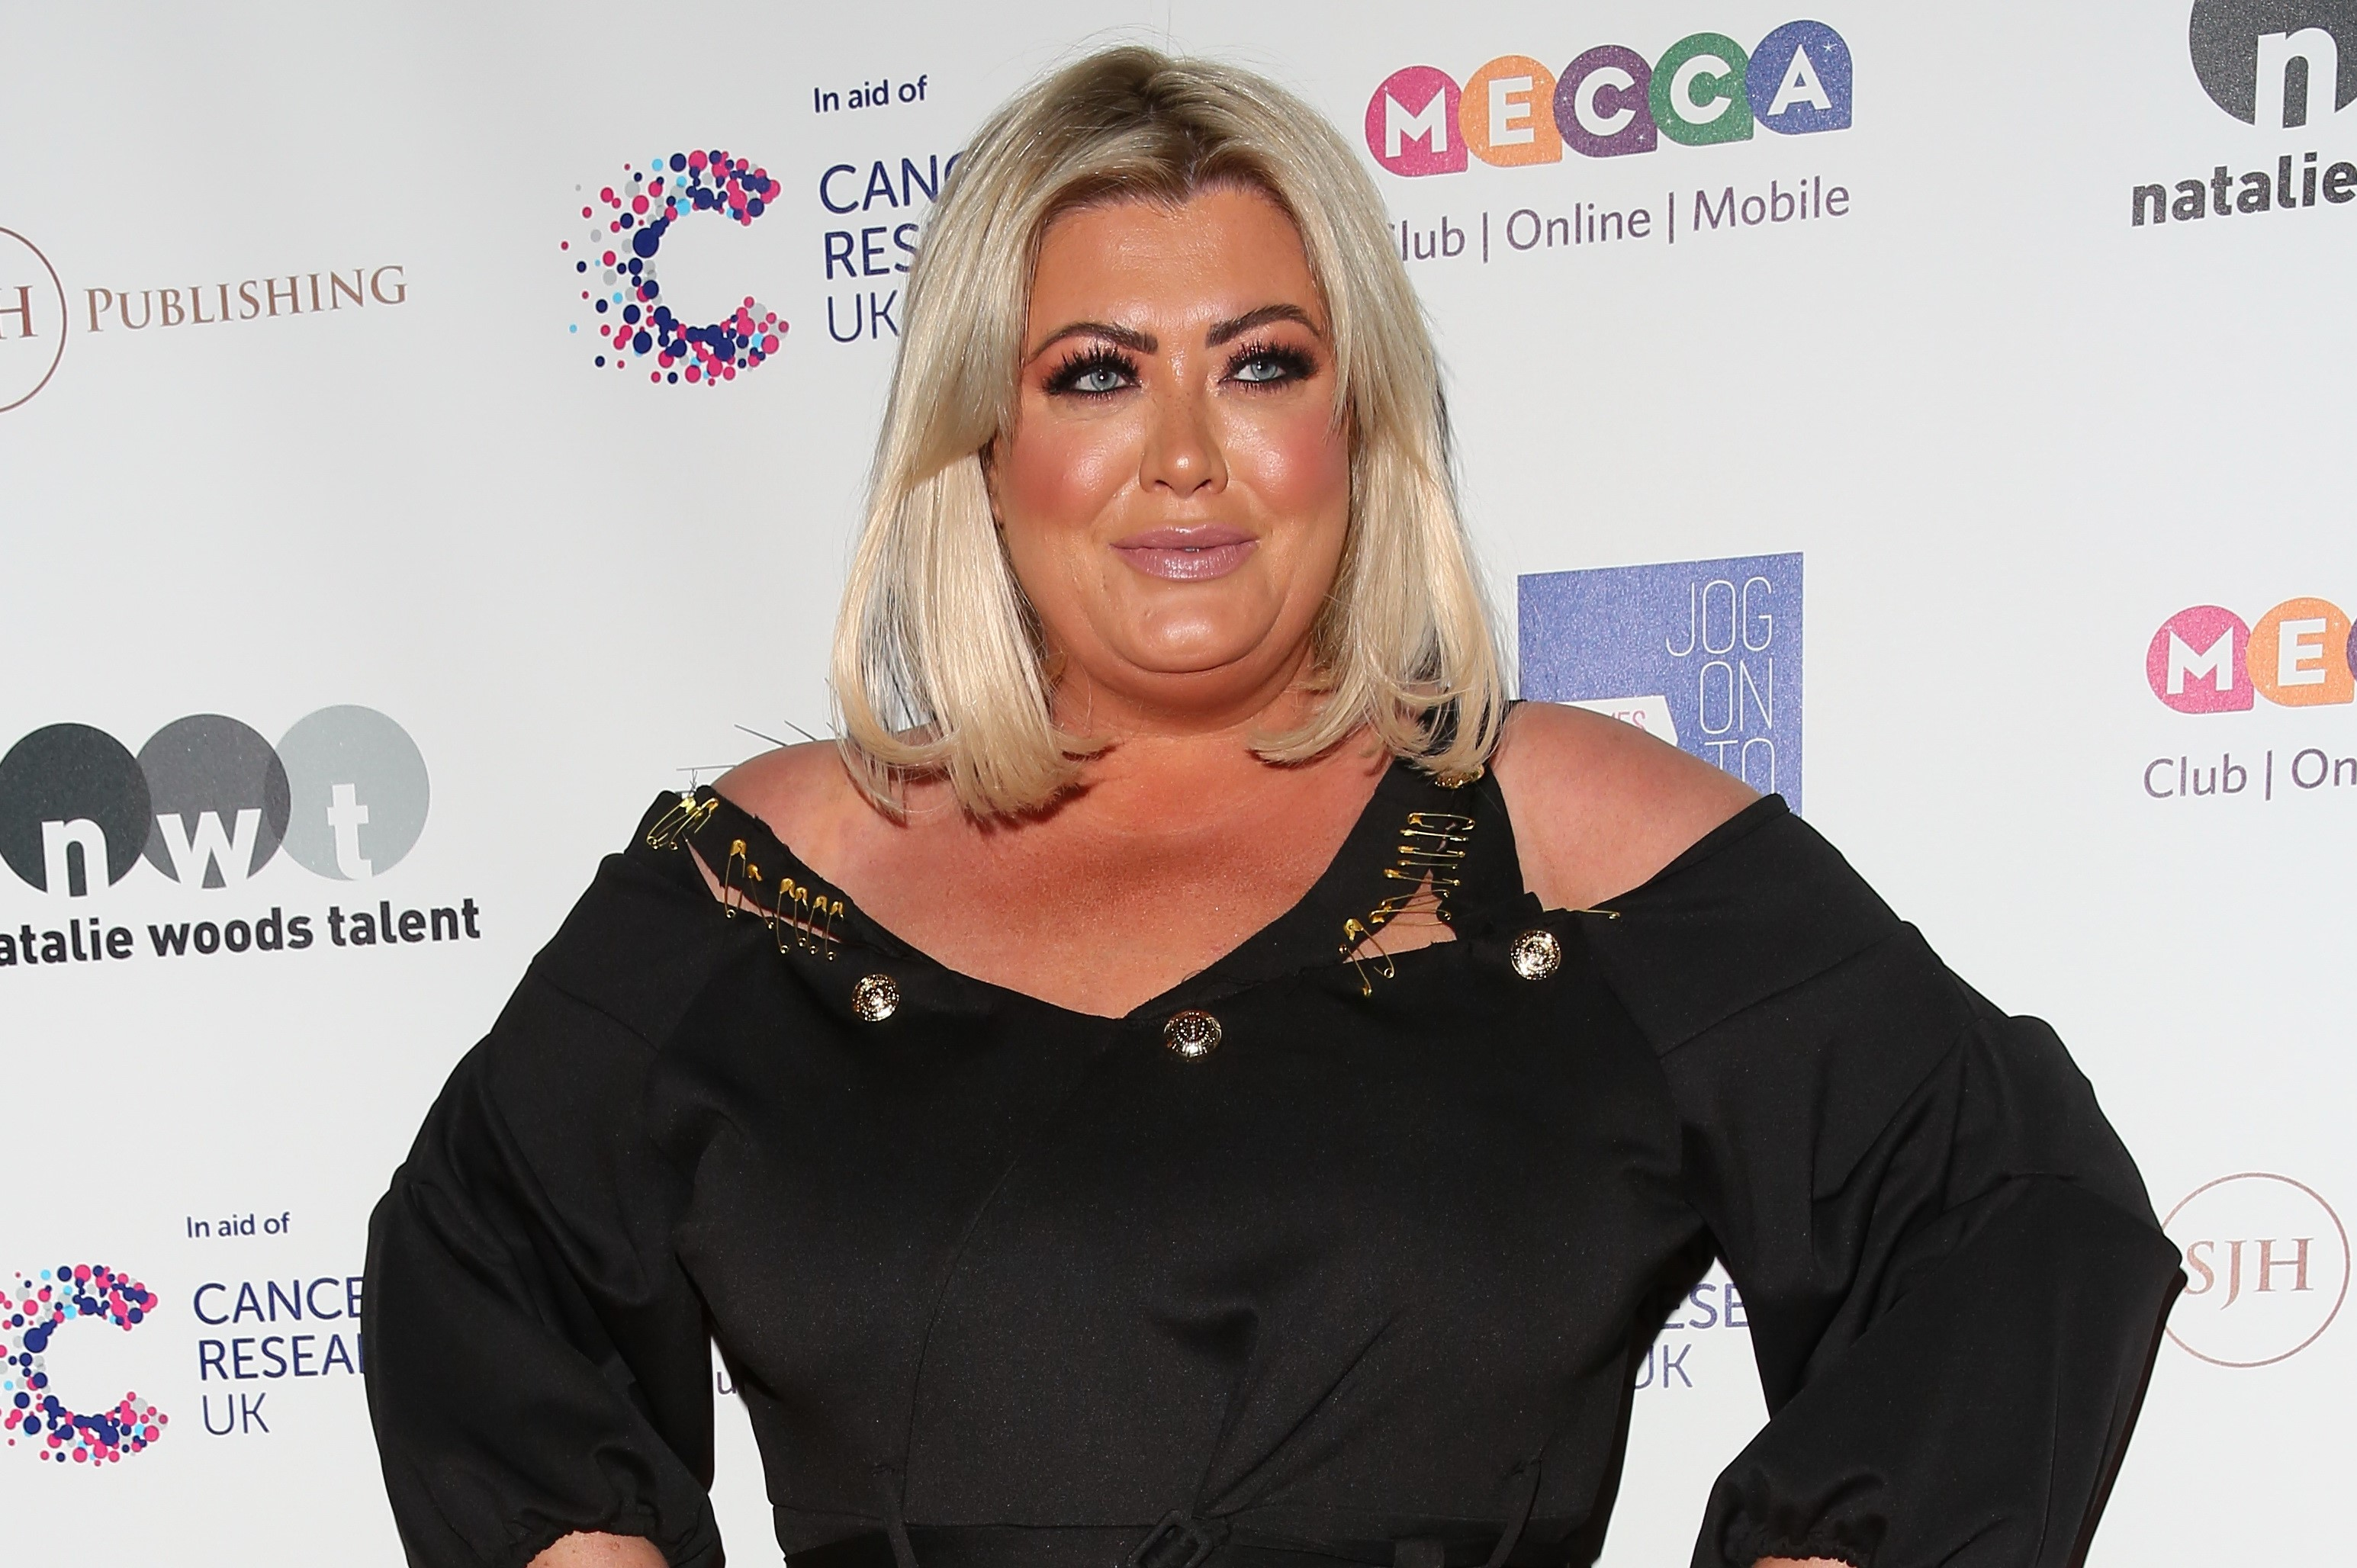 Gemma Collins shares first glimpse of new TV show